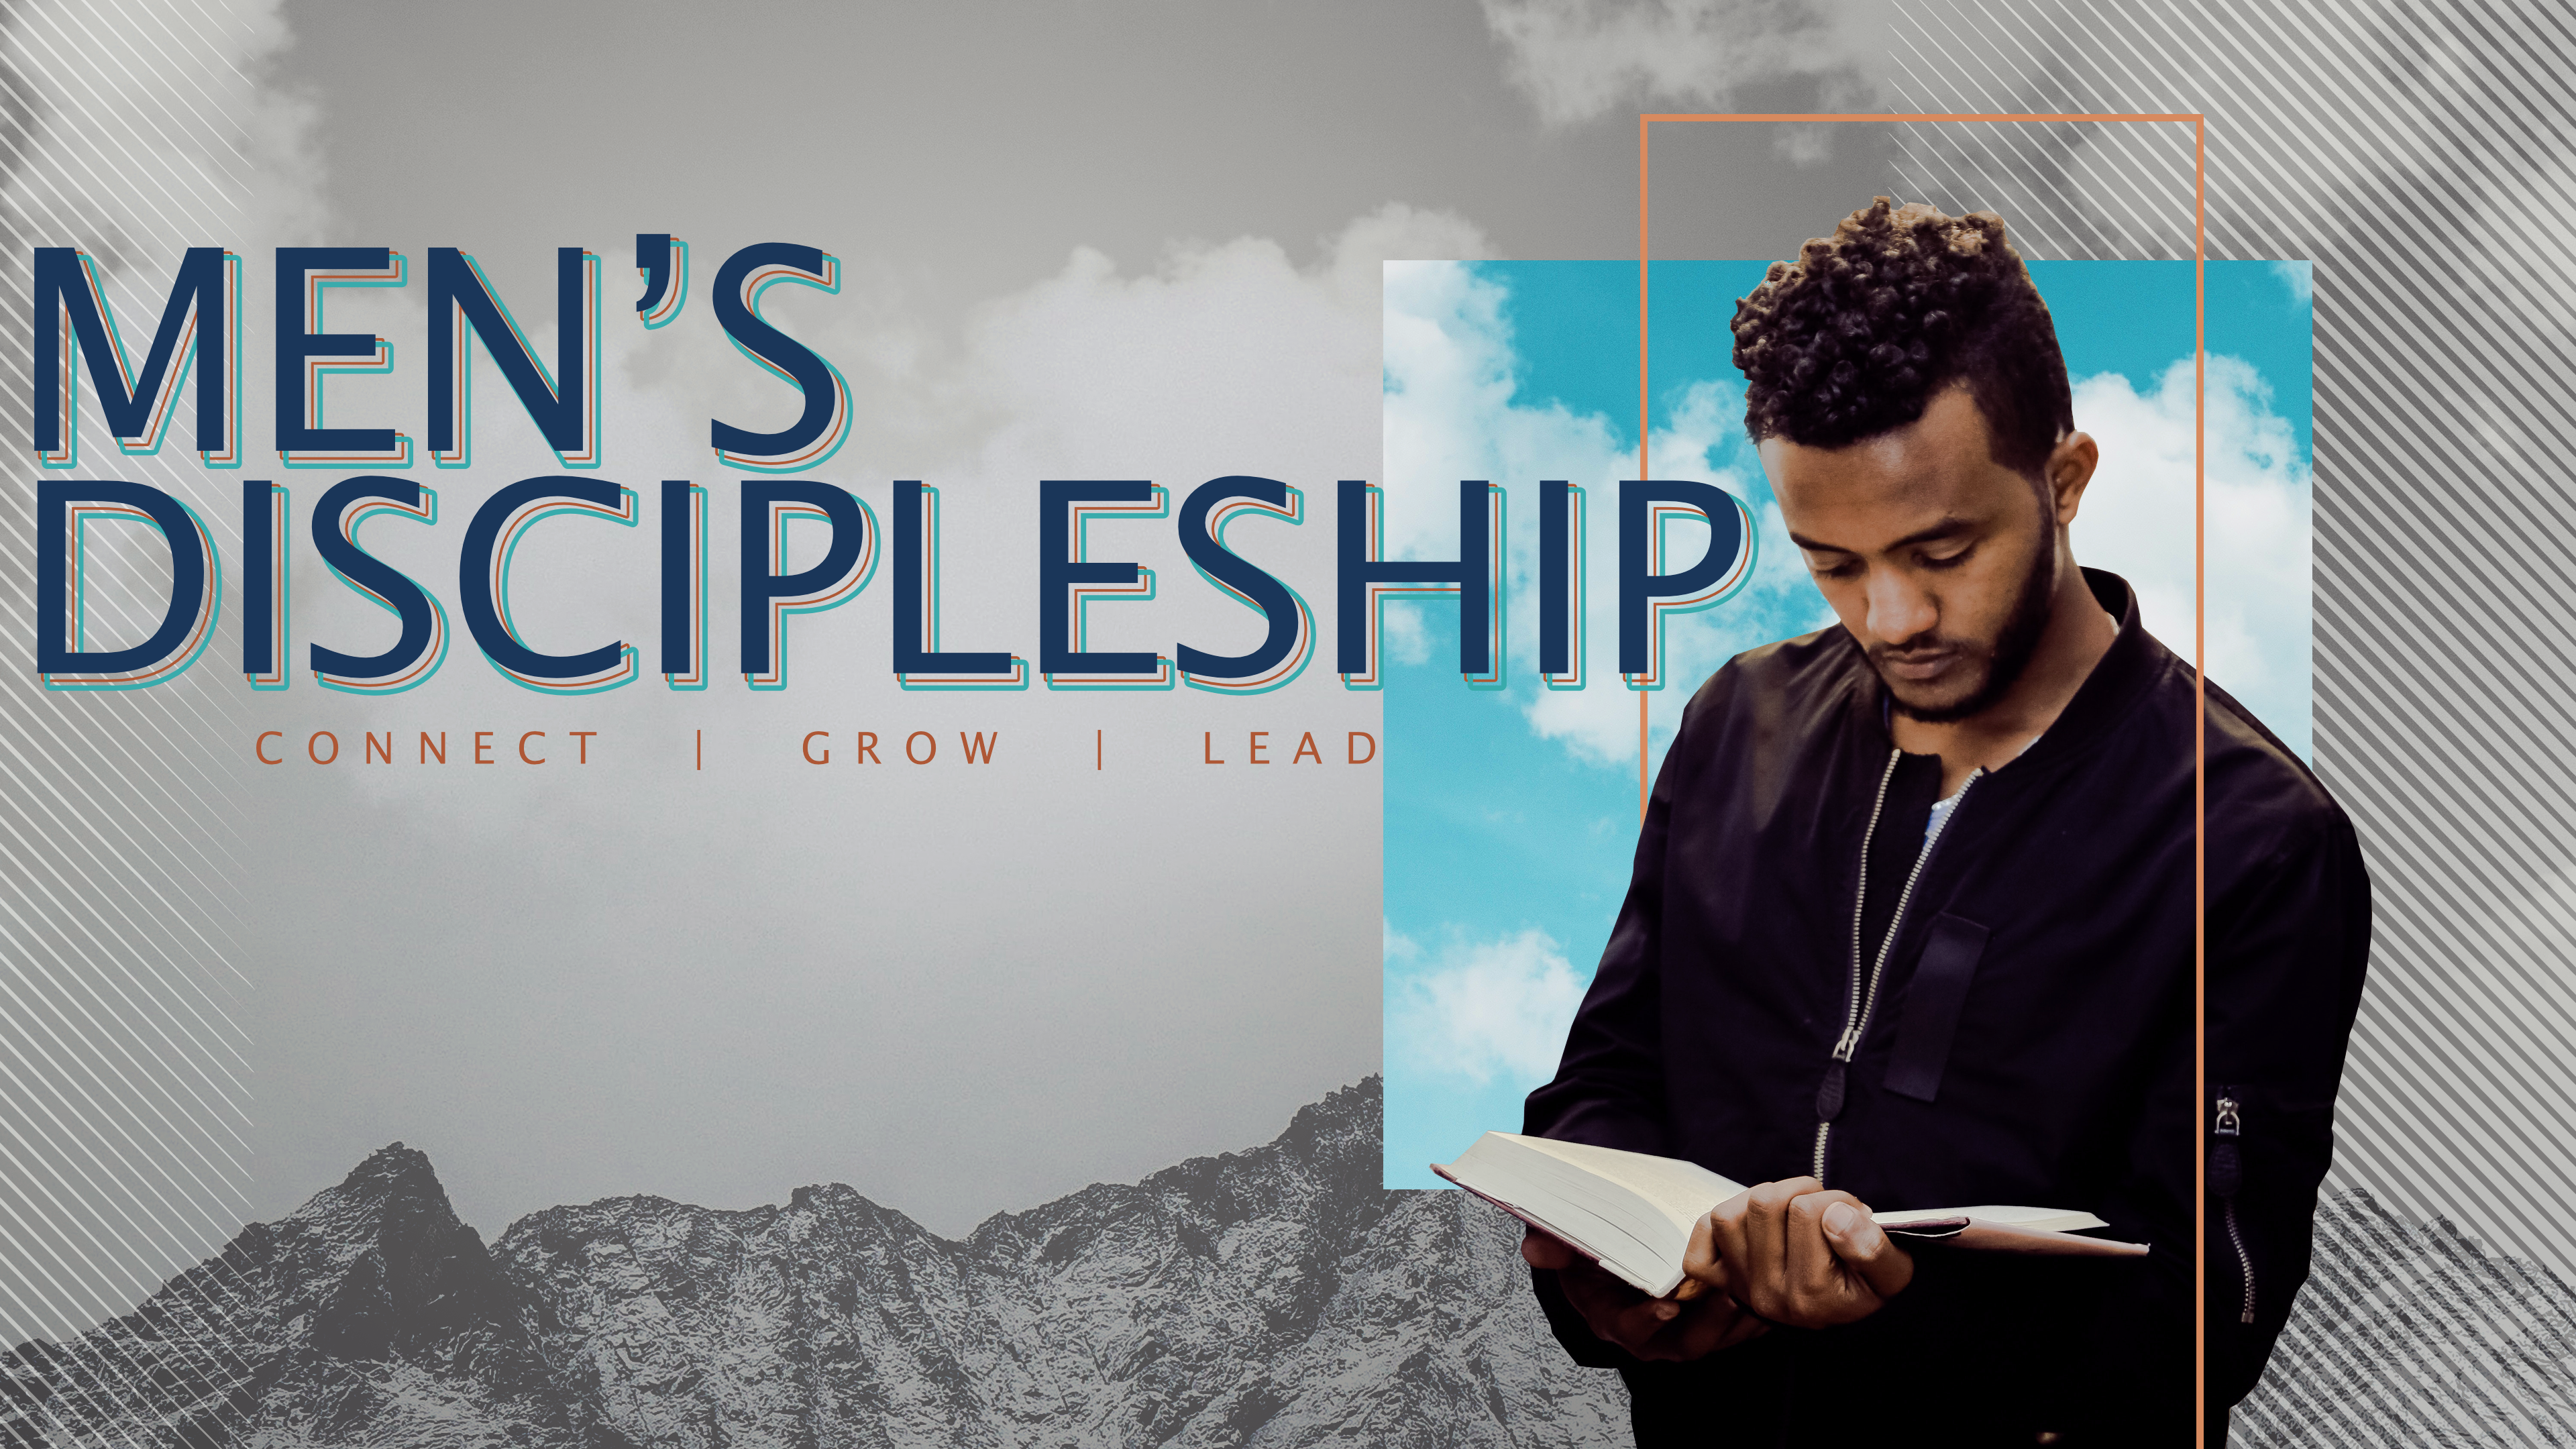 Men's Discipleship Graphic